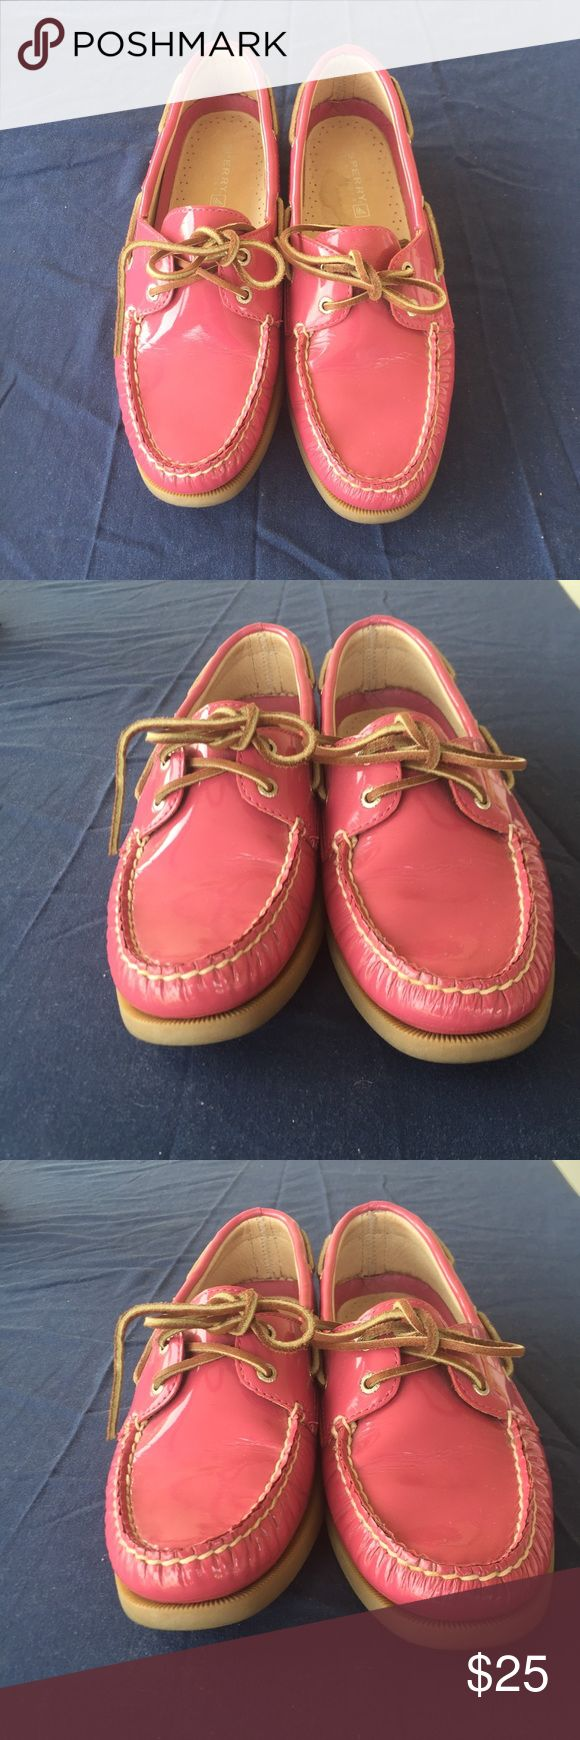 Shiny pink  Sperry top -Siders flat Shoes Shinny pink leather upper top-sider shoes /size M /Great condition . Sperry Top-Sider Shoes Lace Up Boots